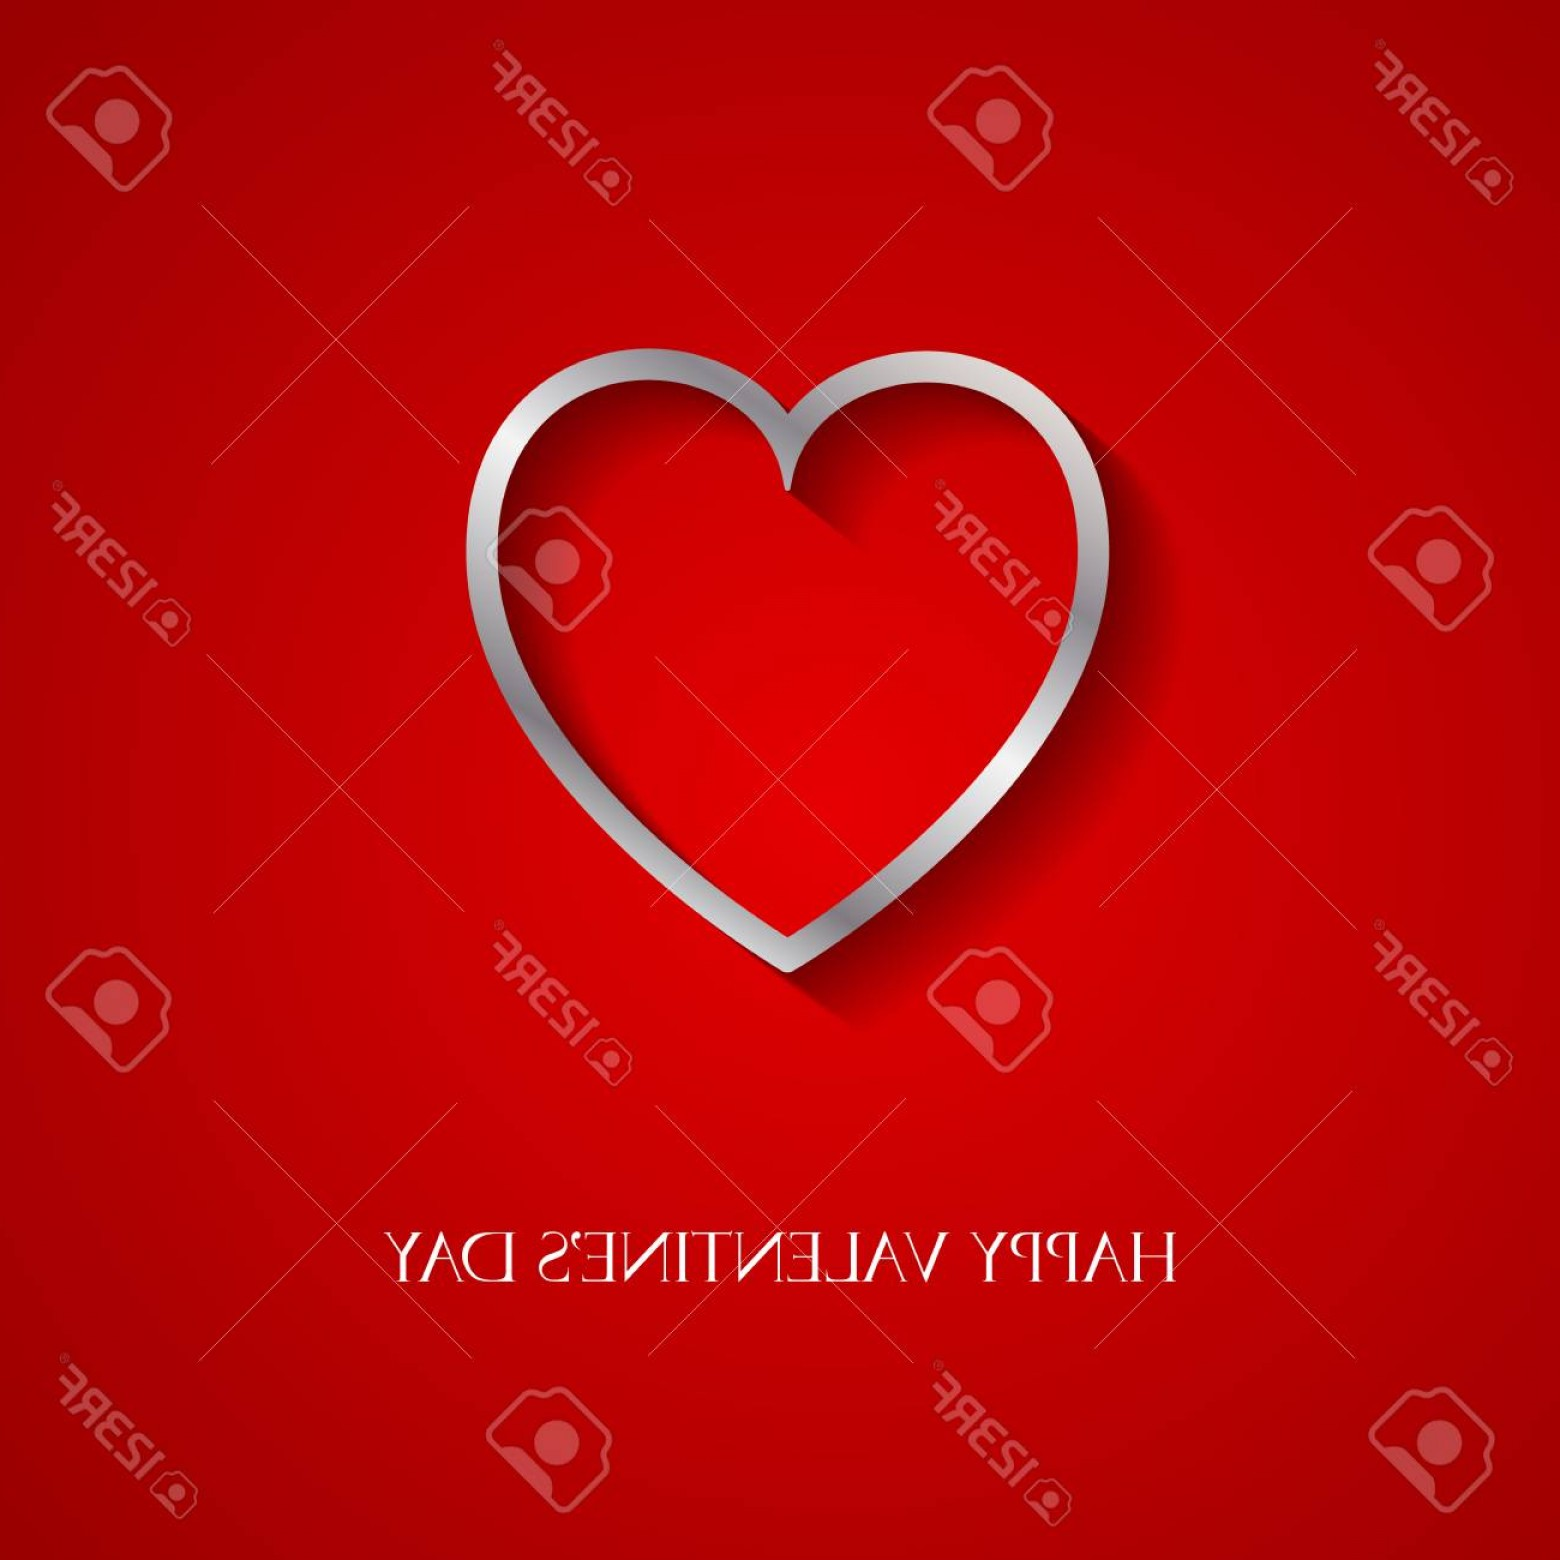 Silver Heart Vector: Photostock Vector Happy Valentine Day Greeting Card With Silver Heart Vector Illustration Of Loving Heart